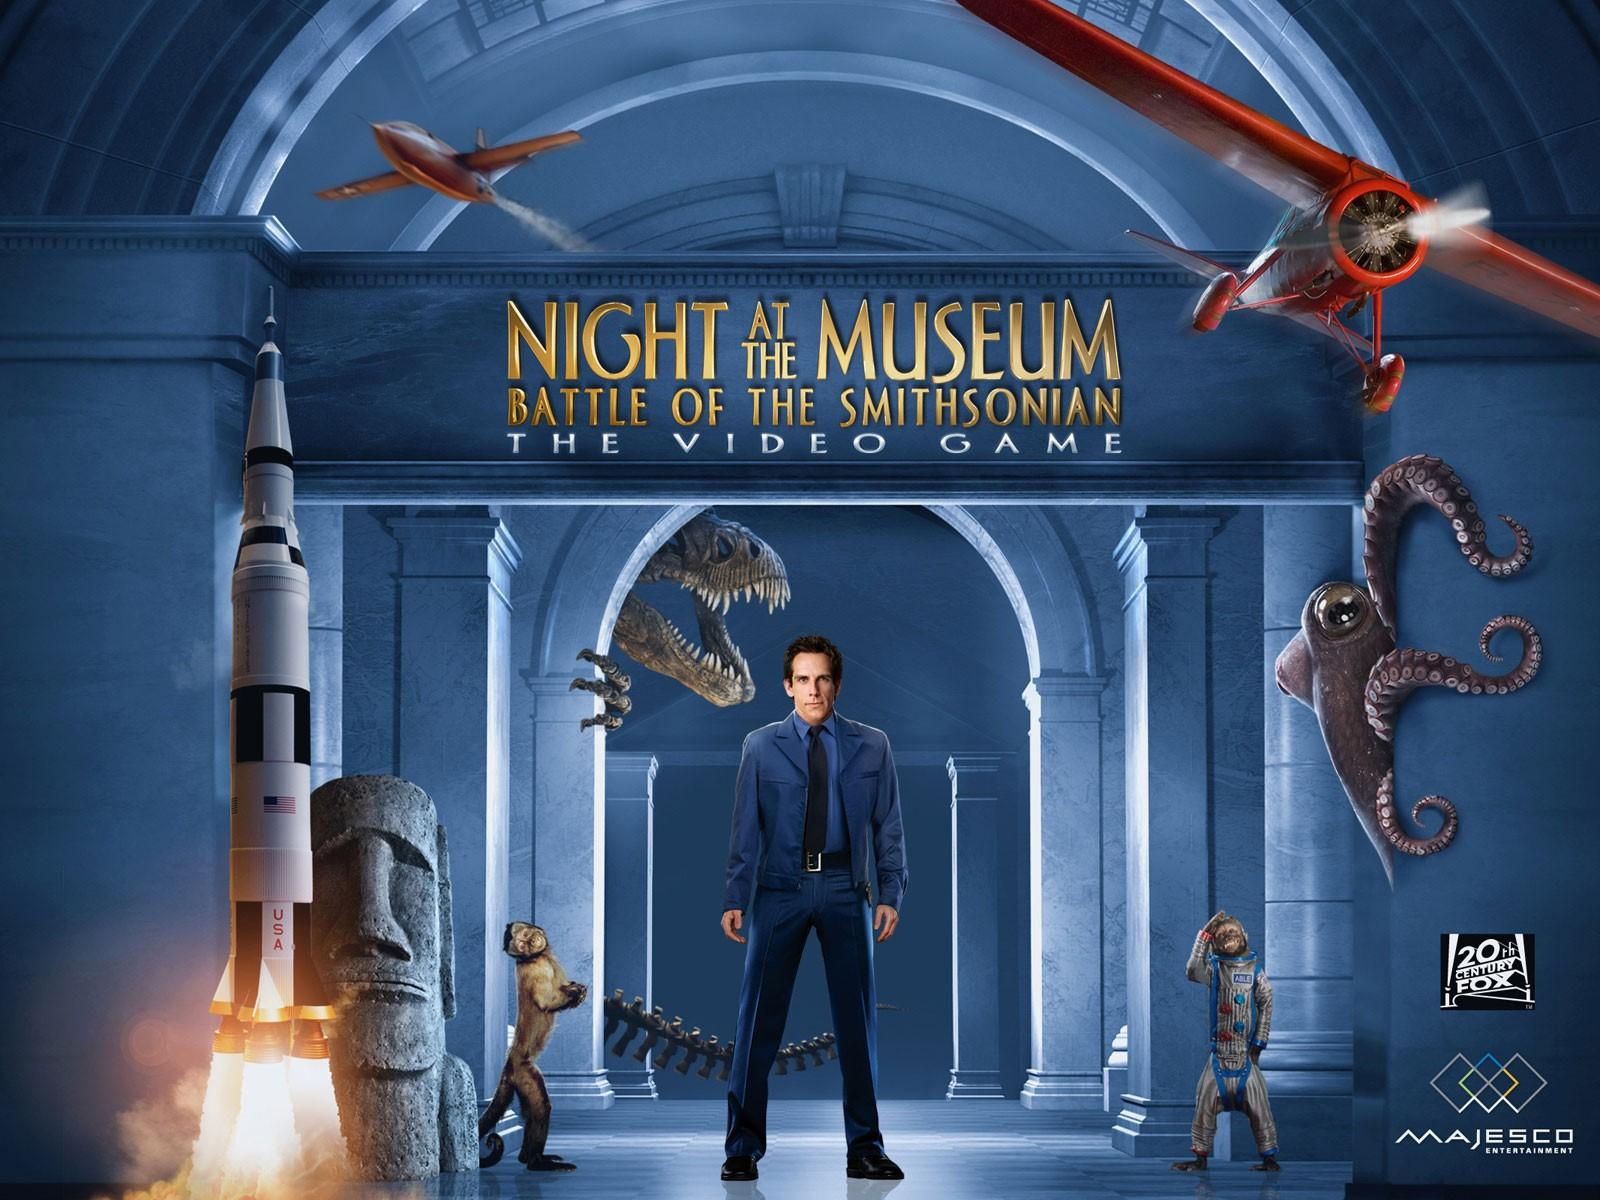 Обои Night at the Museum Battle of the Smithsonian 1600x1200